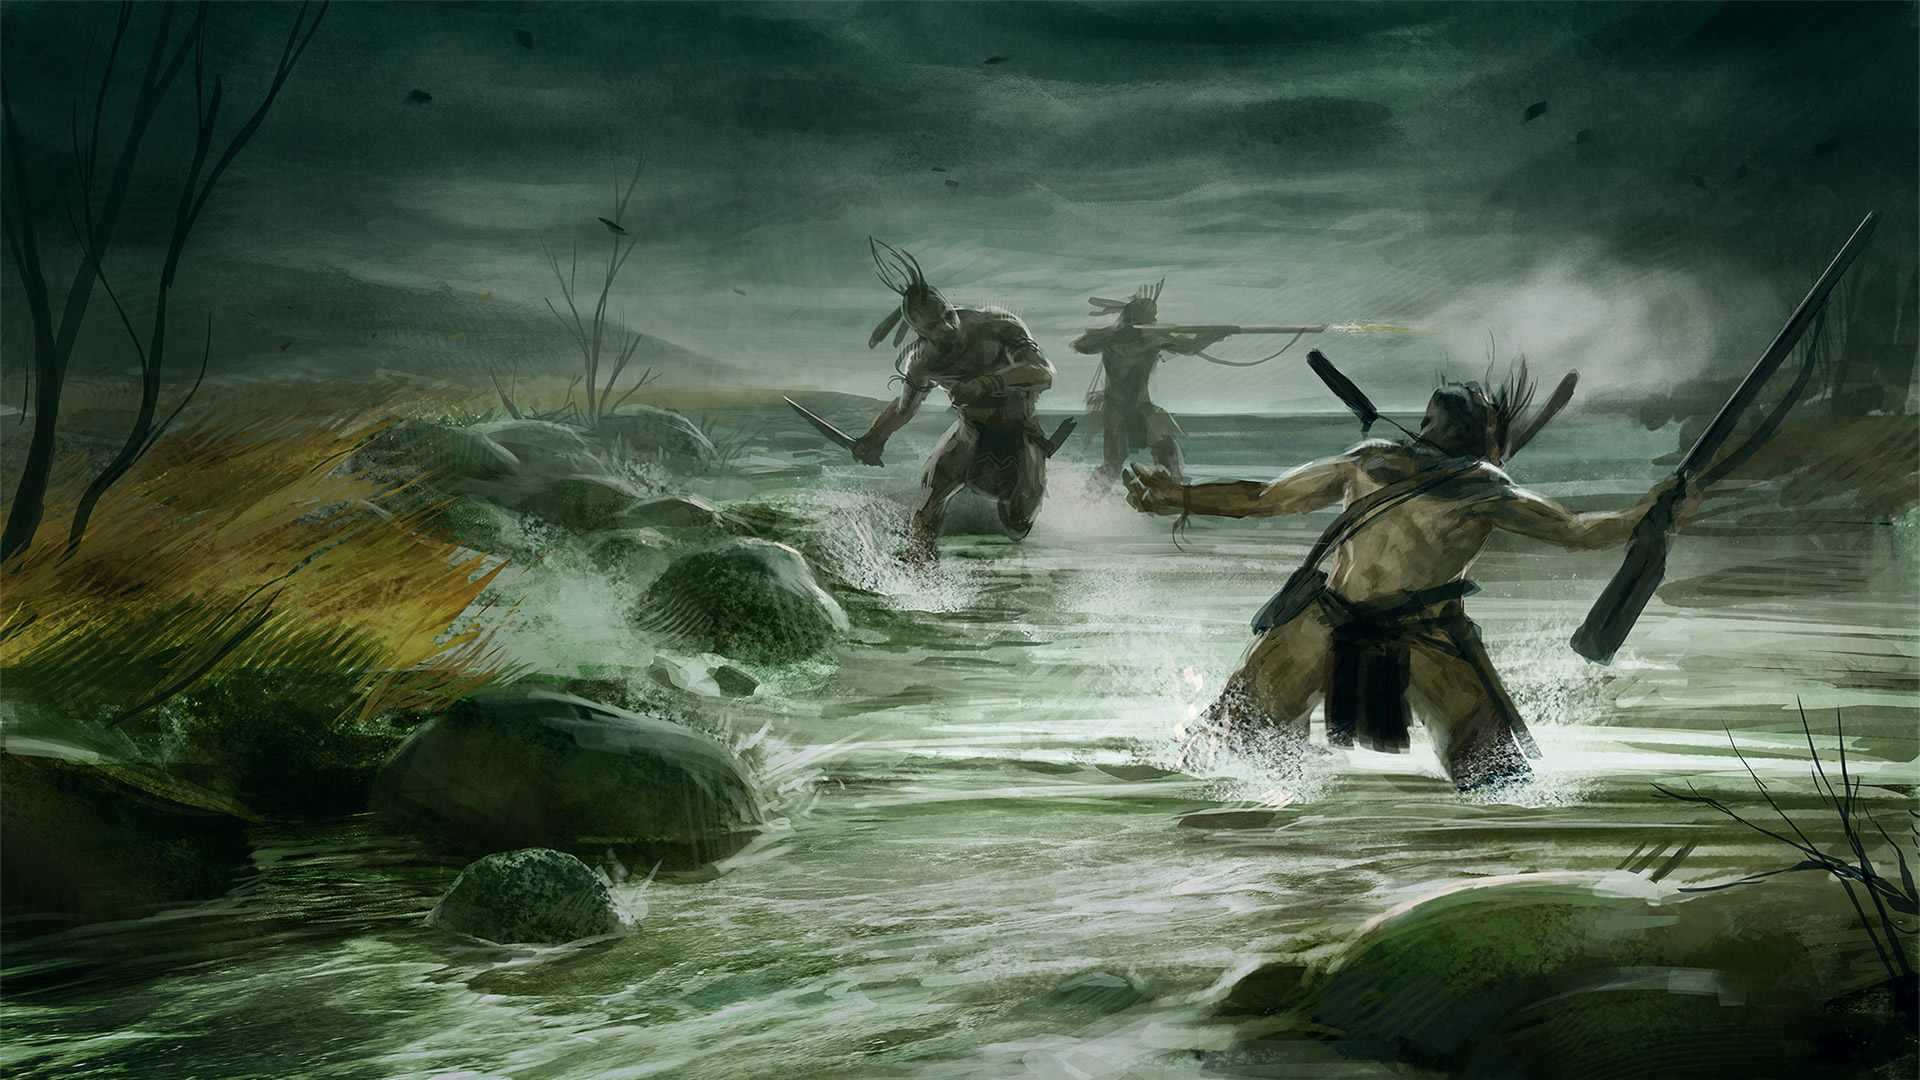 In River   War Games Wallpaper Image featuring Empire Total War 1920x1080